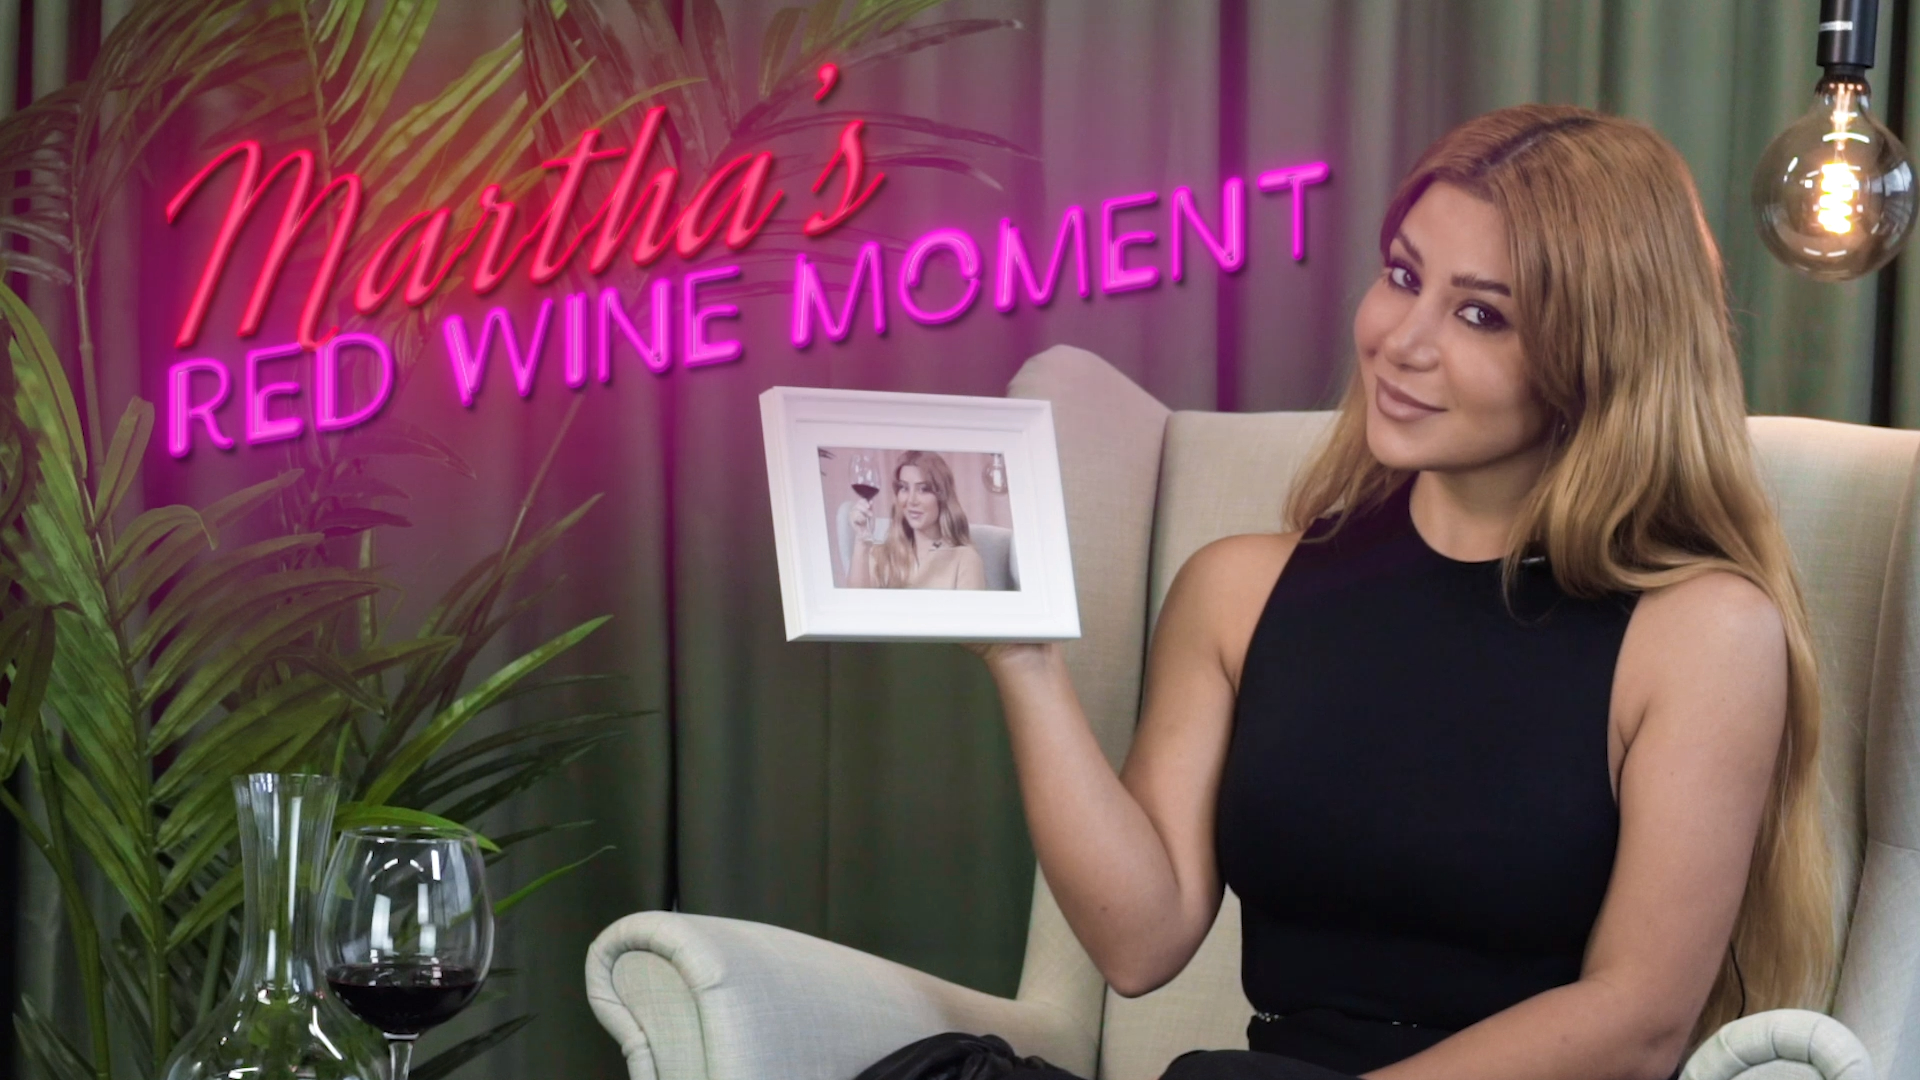 Martha's Red Wine Moment from Dinner Party #2, Season 8